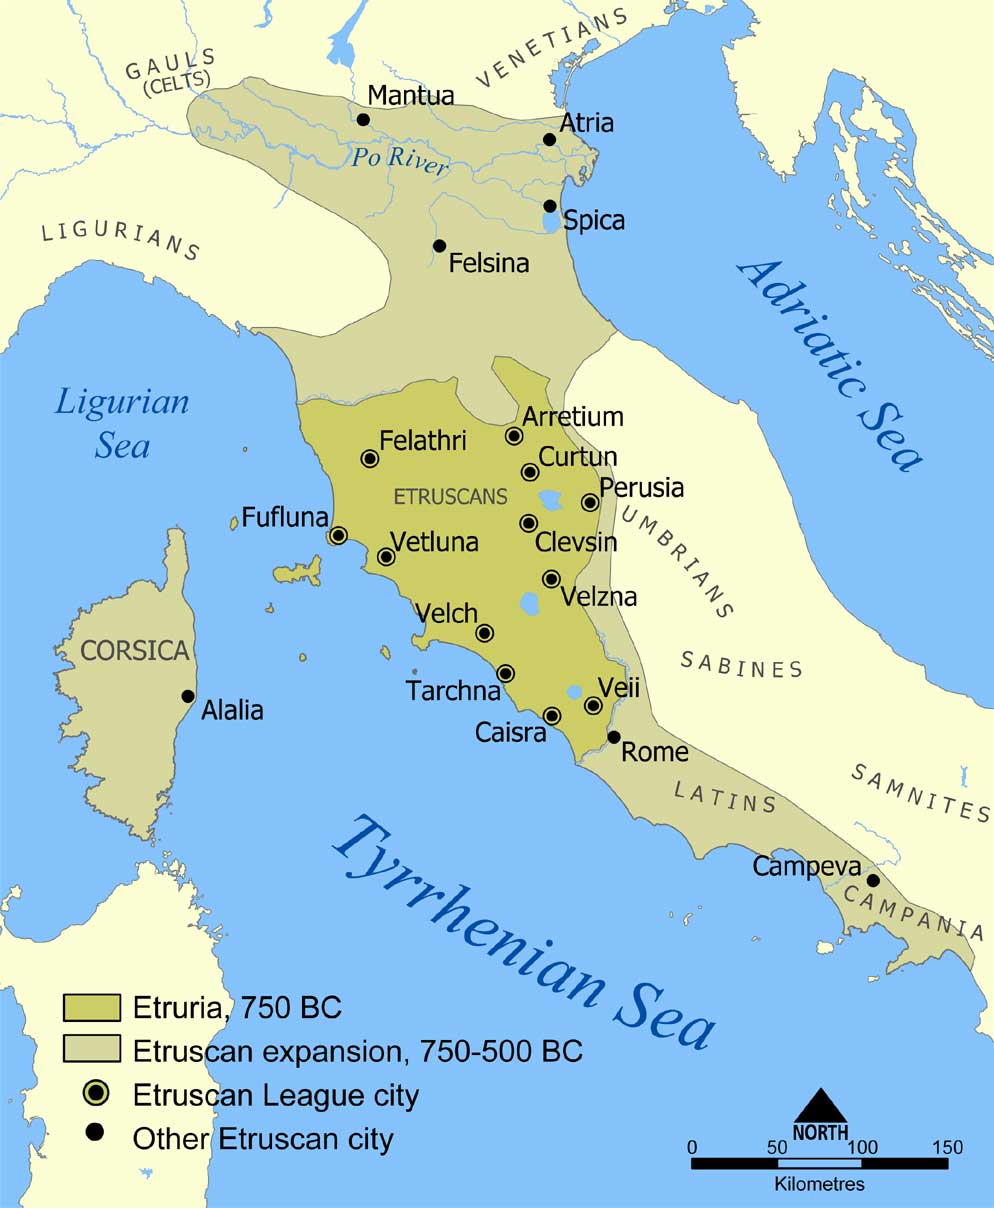 Map of Italy highlighting two zones of Etruscan civilization from 750–500 BCE. The first zone highlights Etruscan civilization in 750 CE in central Italy. The second zone highlights Etruscan civilization stretching from Northern Italy to southwest Italy.